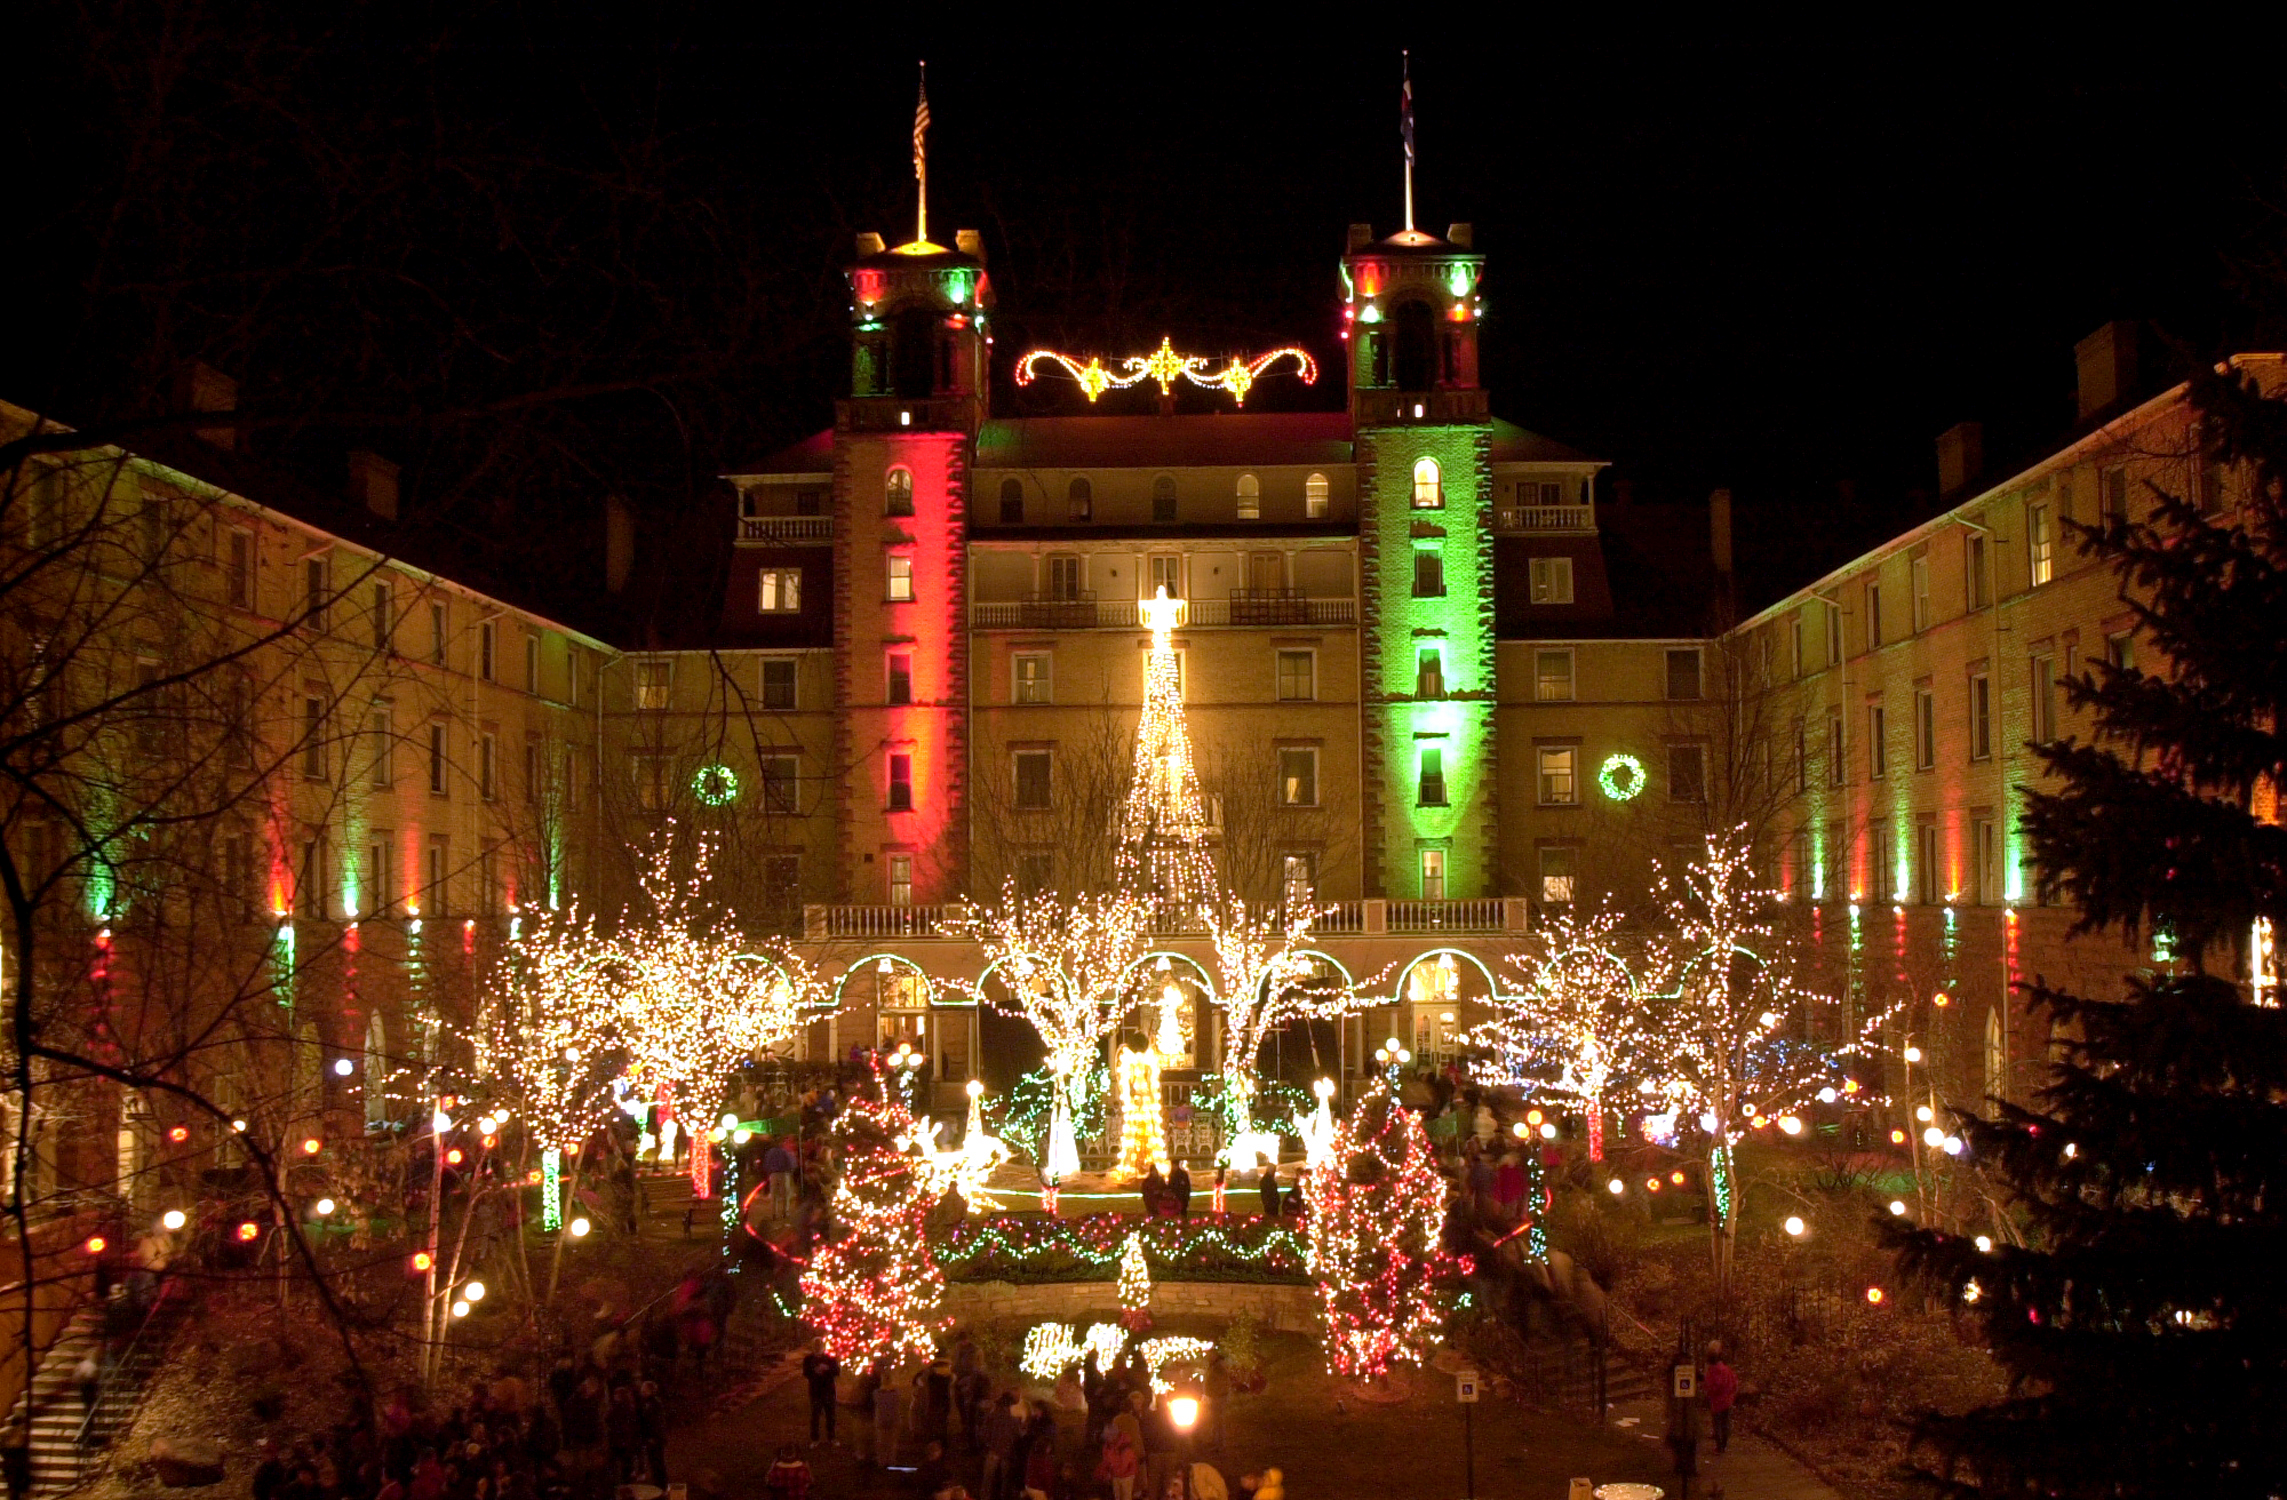 5 Reasons To Spend Holiday 2014 In Glenwood Springs